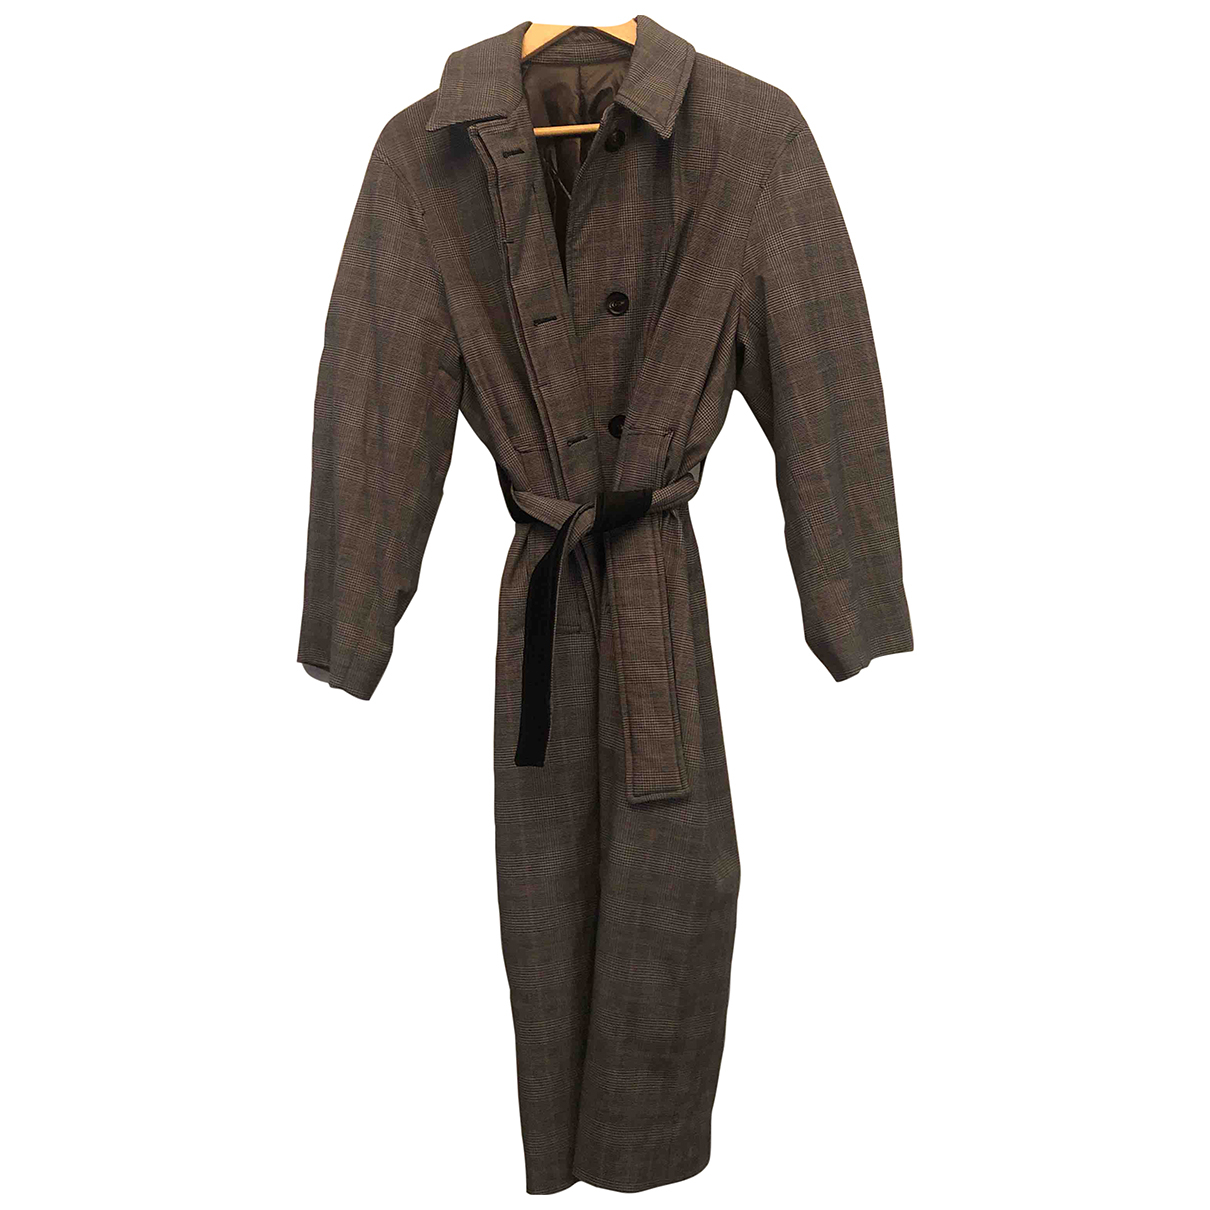 Pringle Of Scotland - Manteau   pour femme en laine - marron